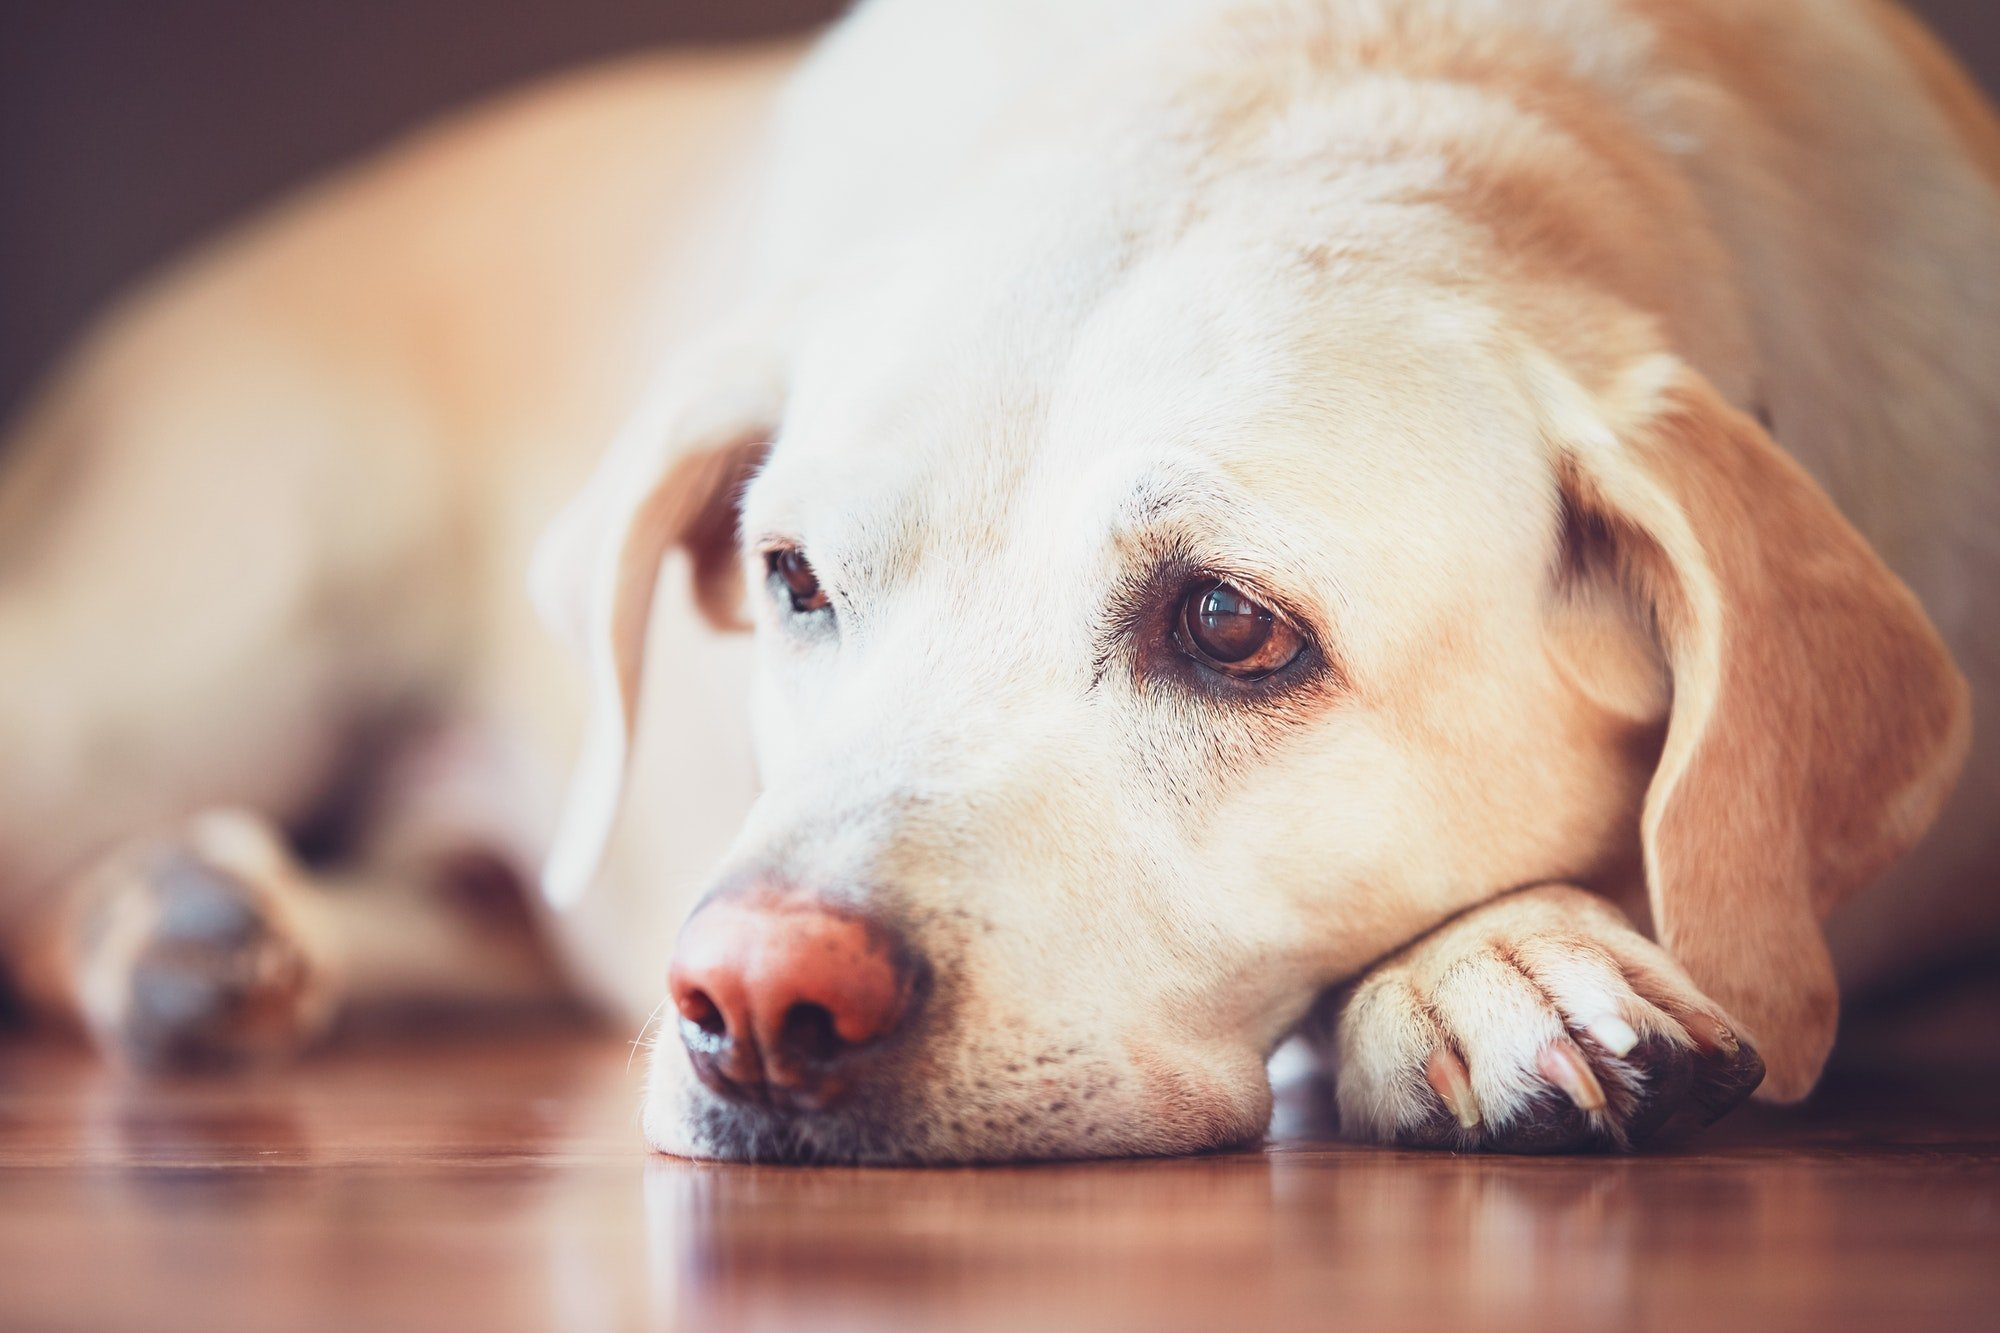 causes and treatment for hookworms in dogs